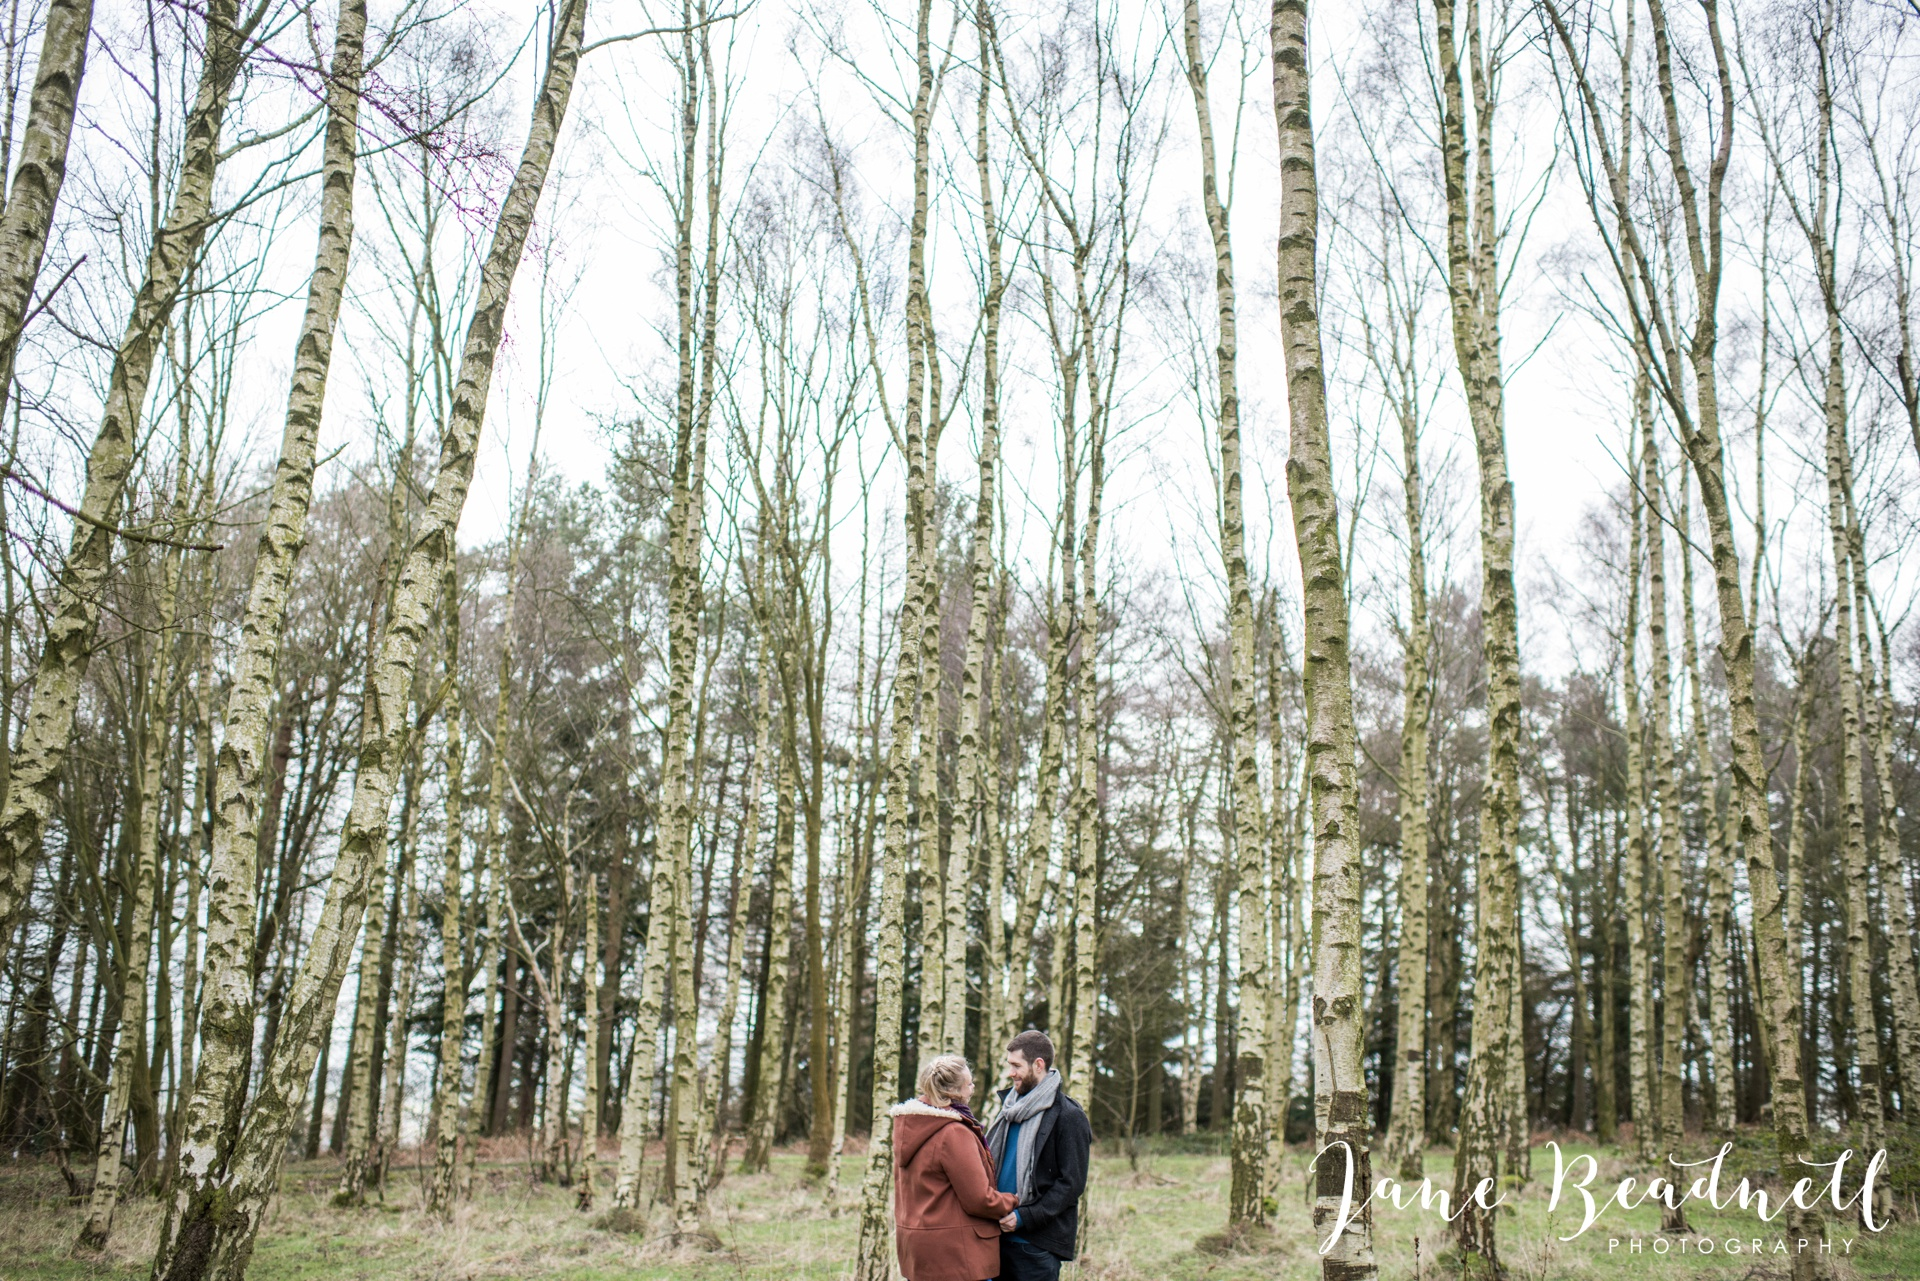 engagement photography Chevin jane beadnell wedding photographer Otley_0003